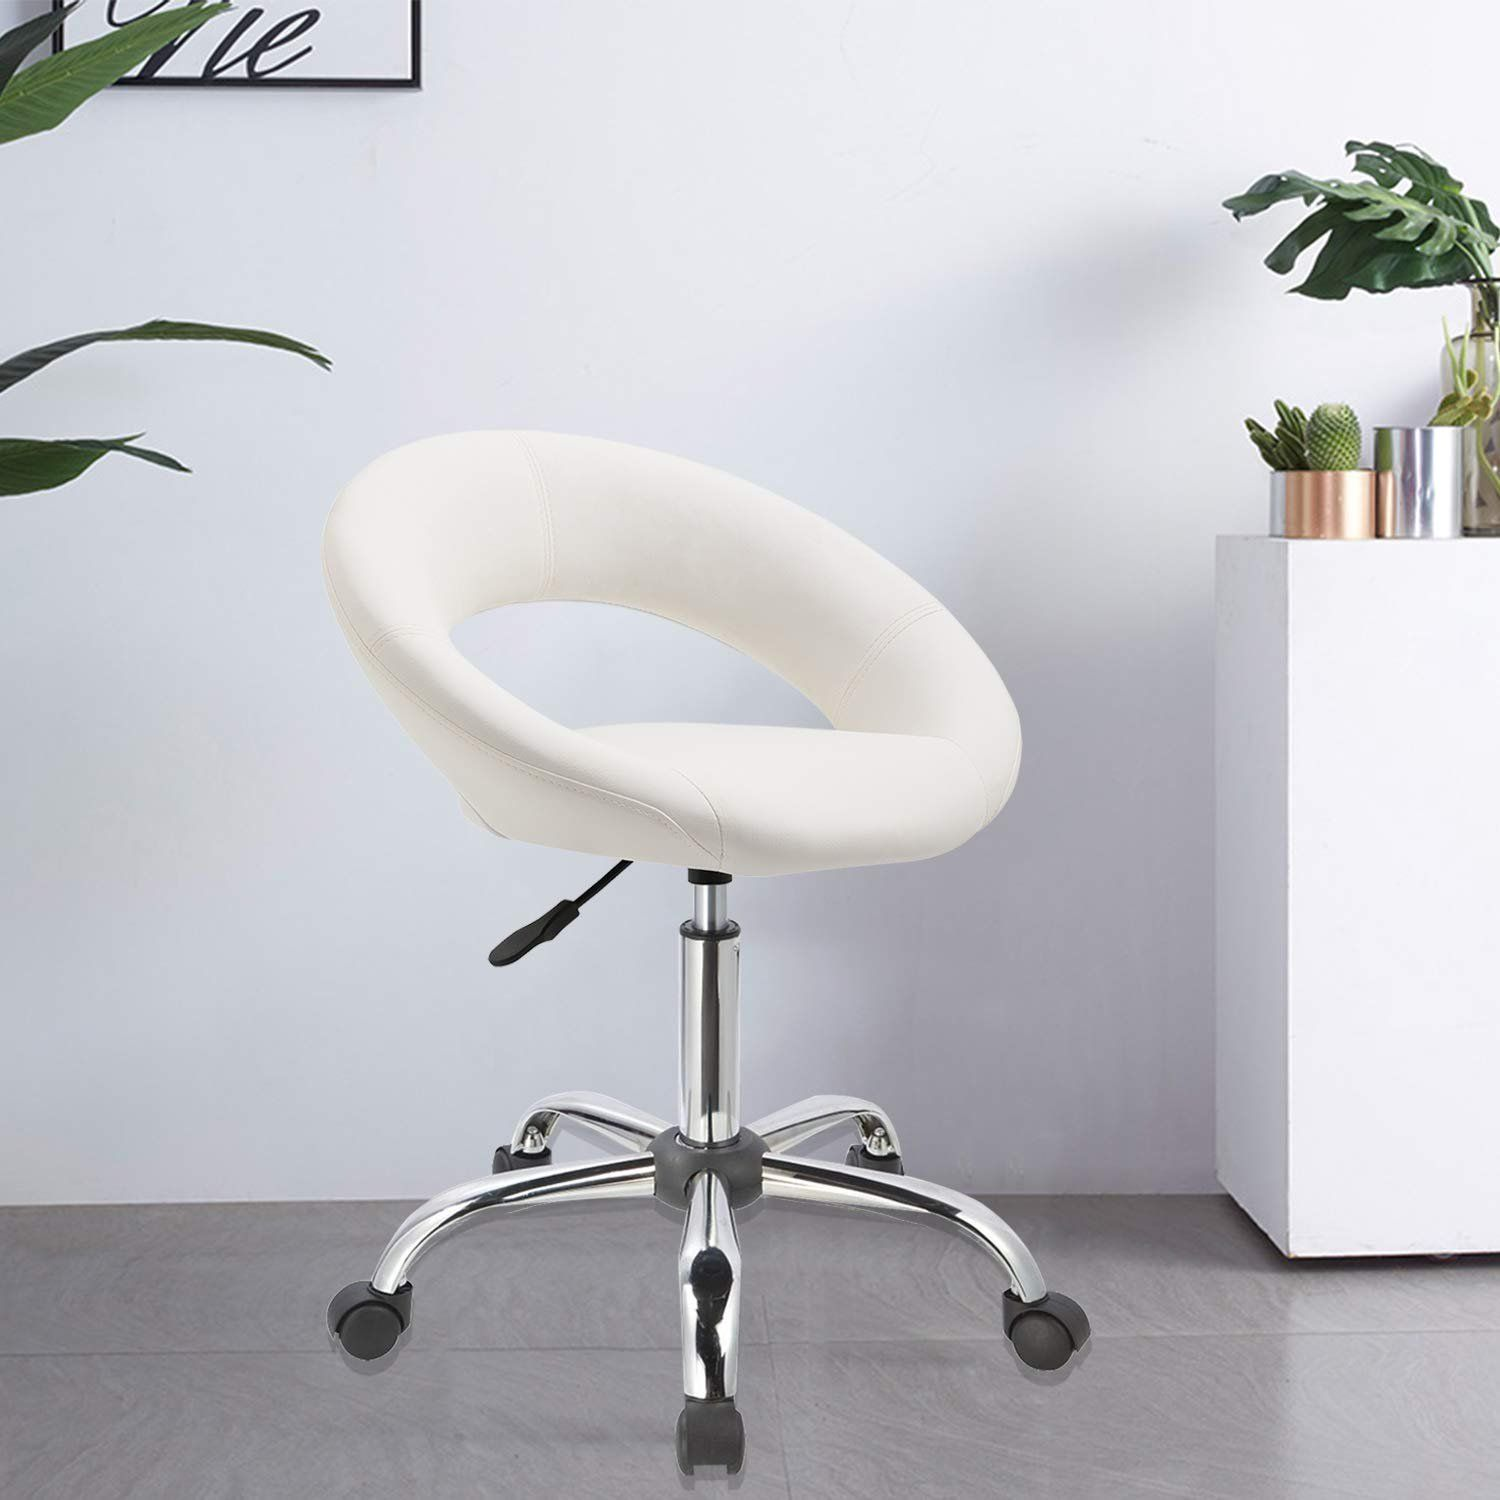 Duhome Home office Desk Chair Work Stool Crescent